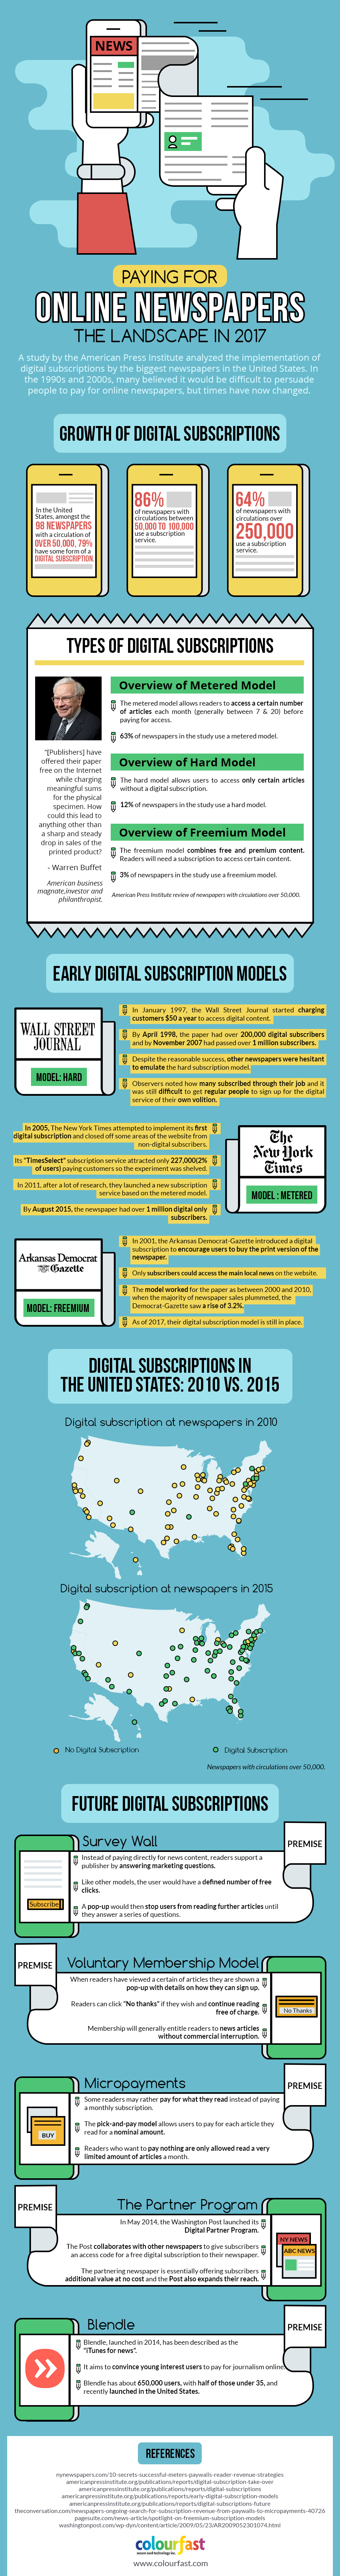 Paying For Online Newspapers- The Landscape in 2017